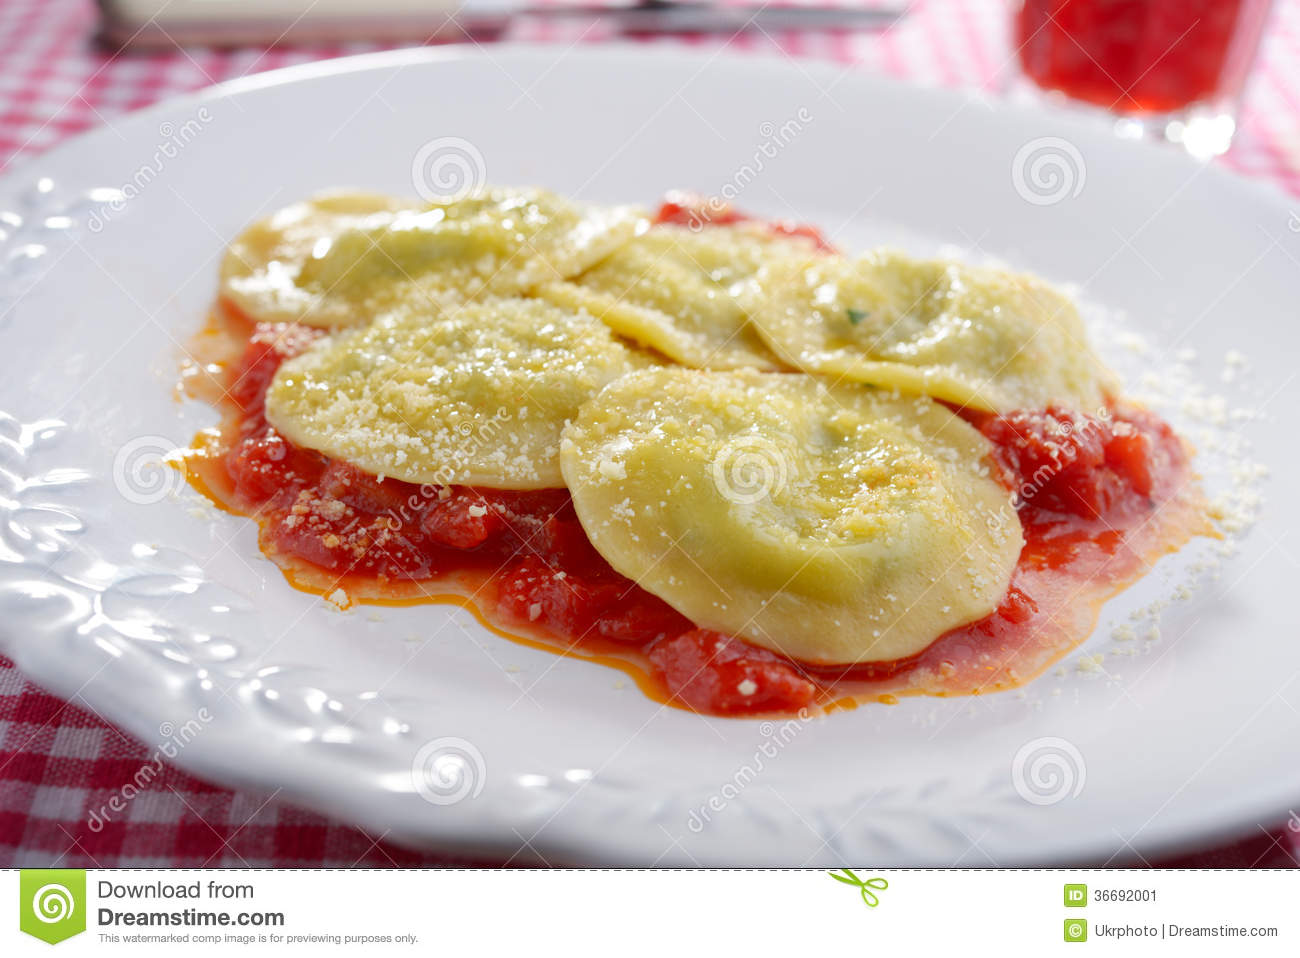 Ravioli With Spinach And Ricotta Stock Image - Image: 36692001